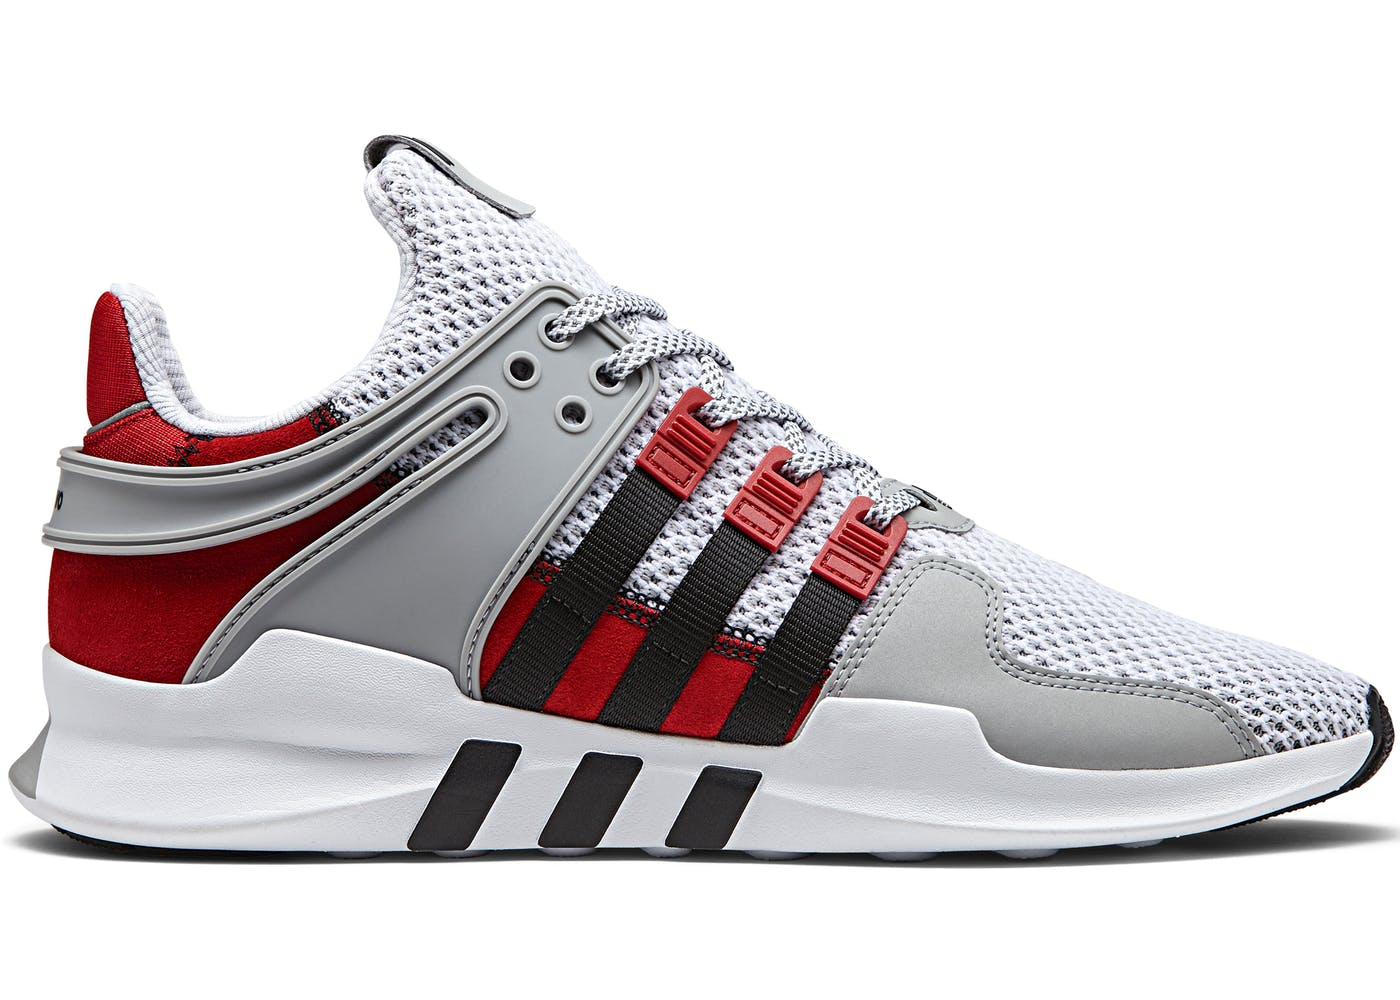 adidas EQT Support Boston Marathon 2016